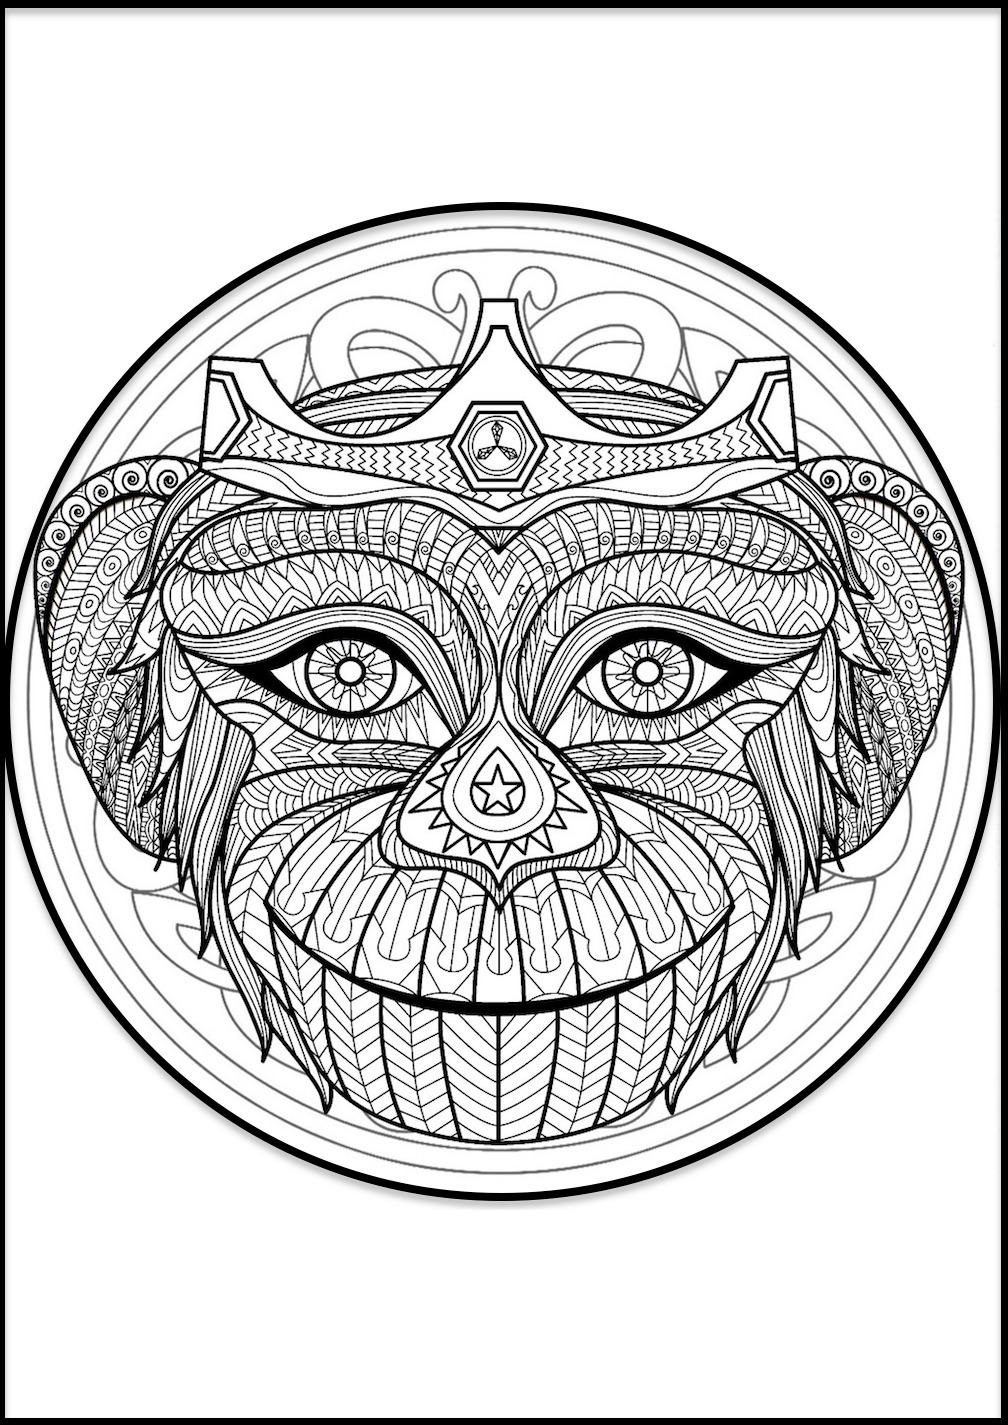 mandala pictures to color best hd flower mandala coloring pages for adults images color to pictures mandala